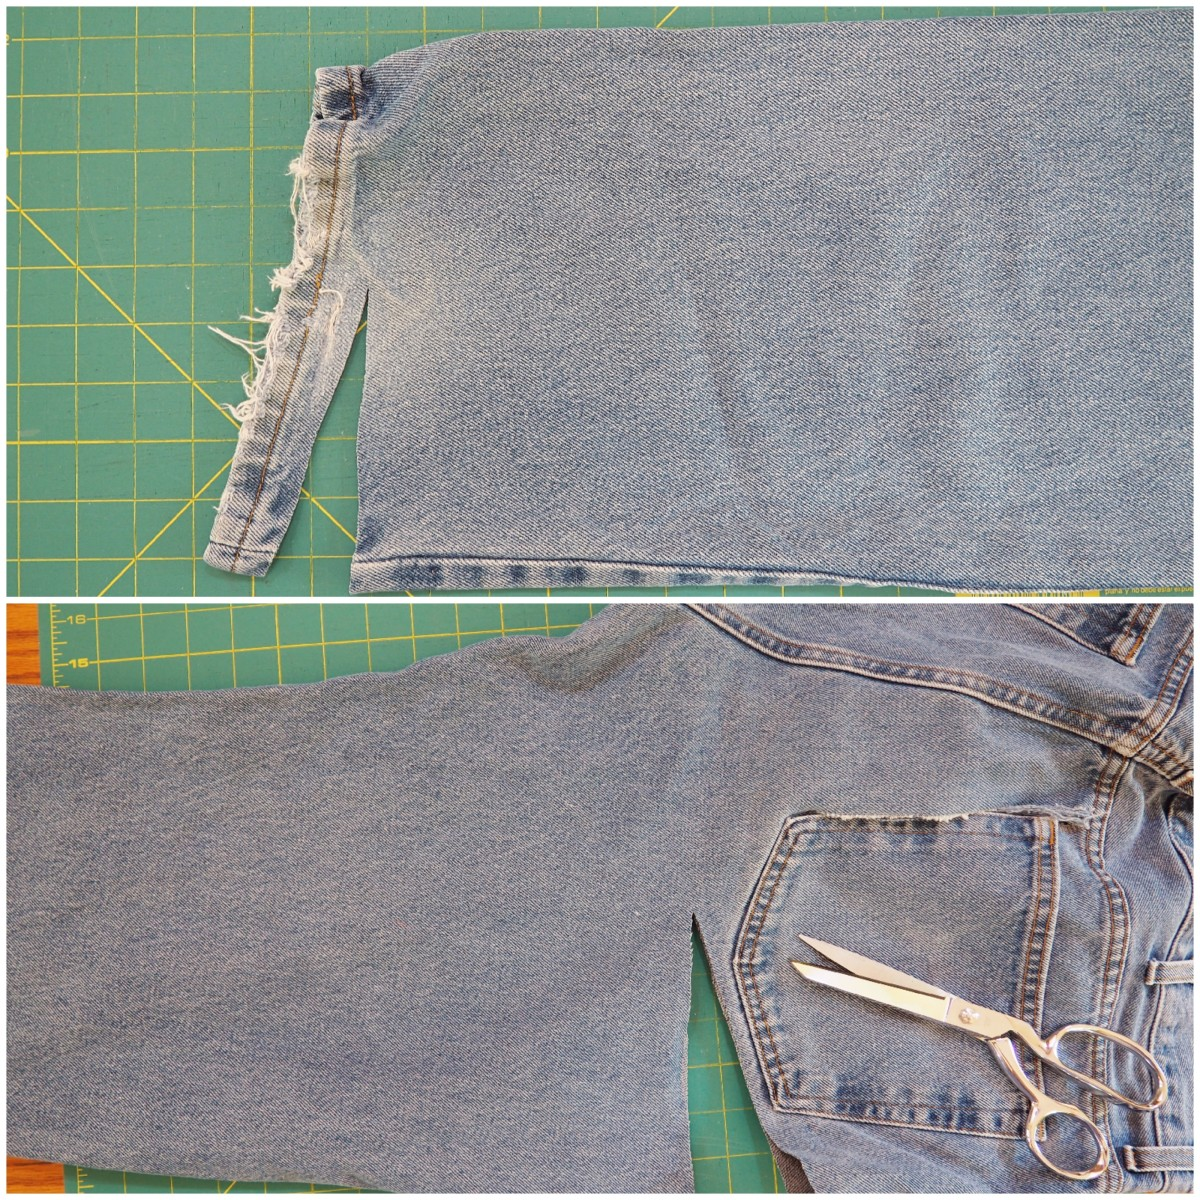 Getting the fabric pieces from the jeans.